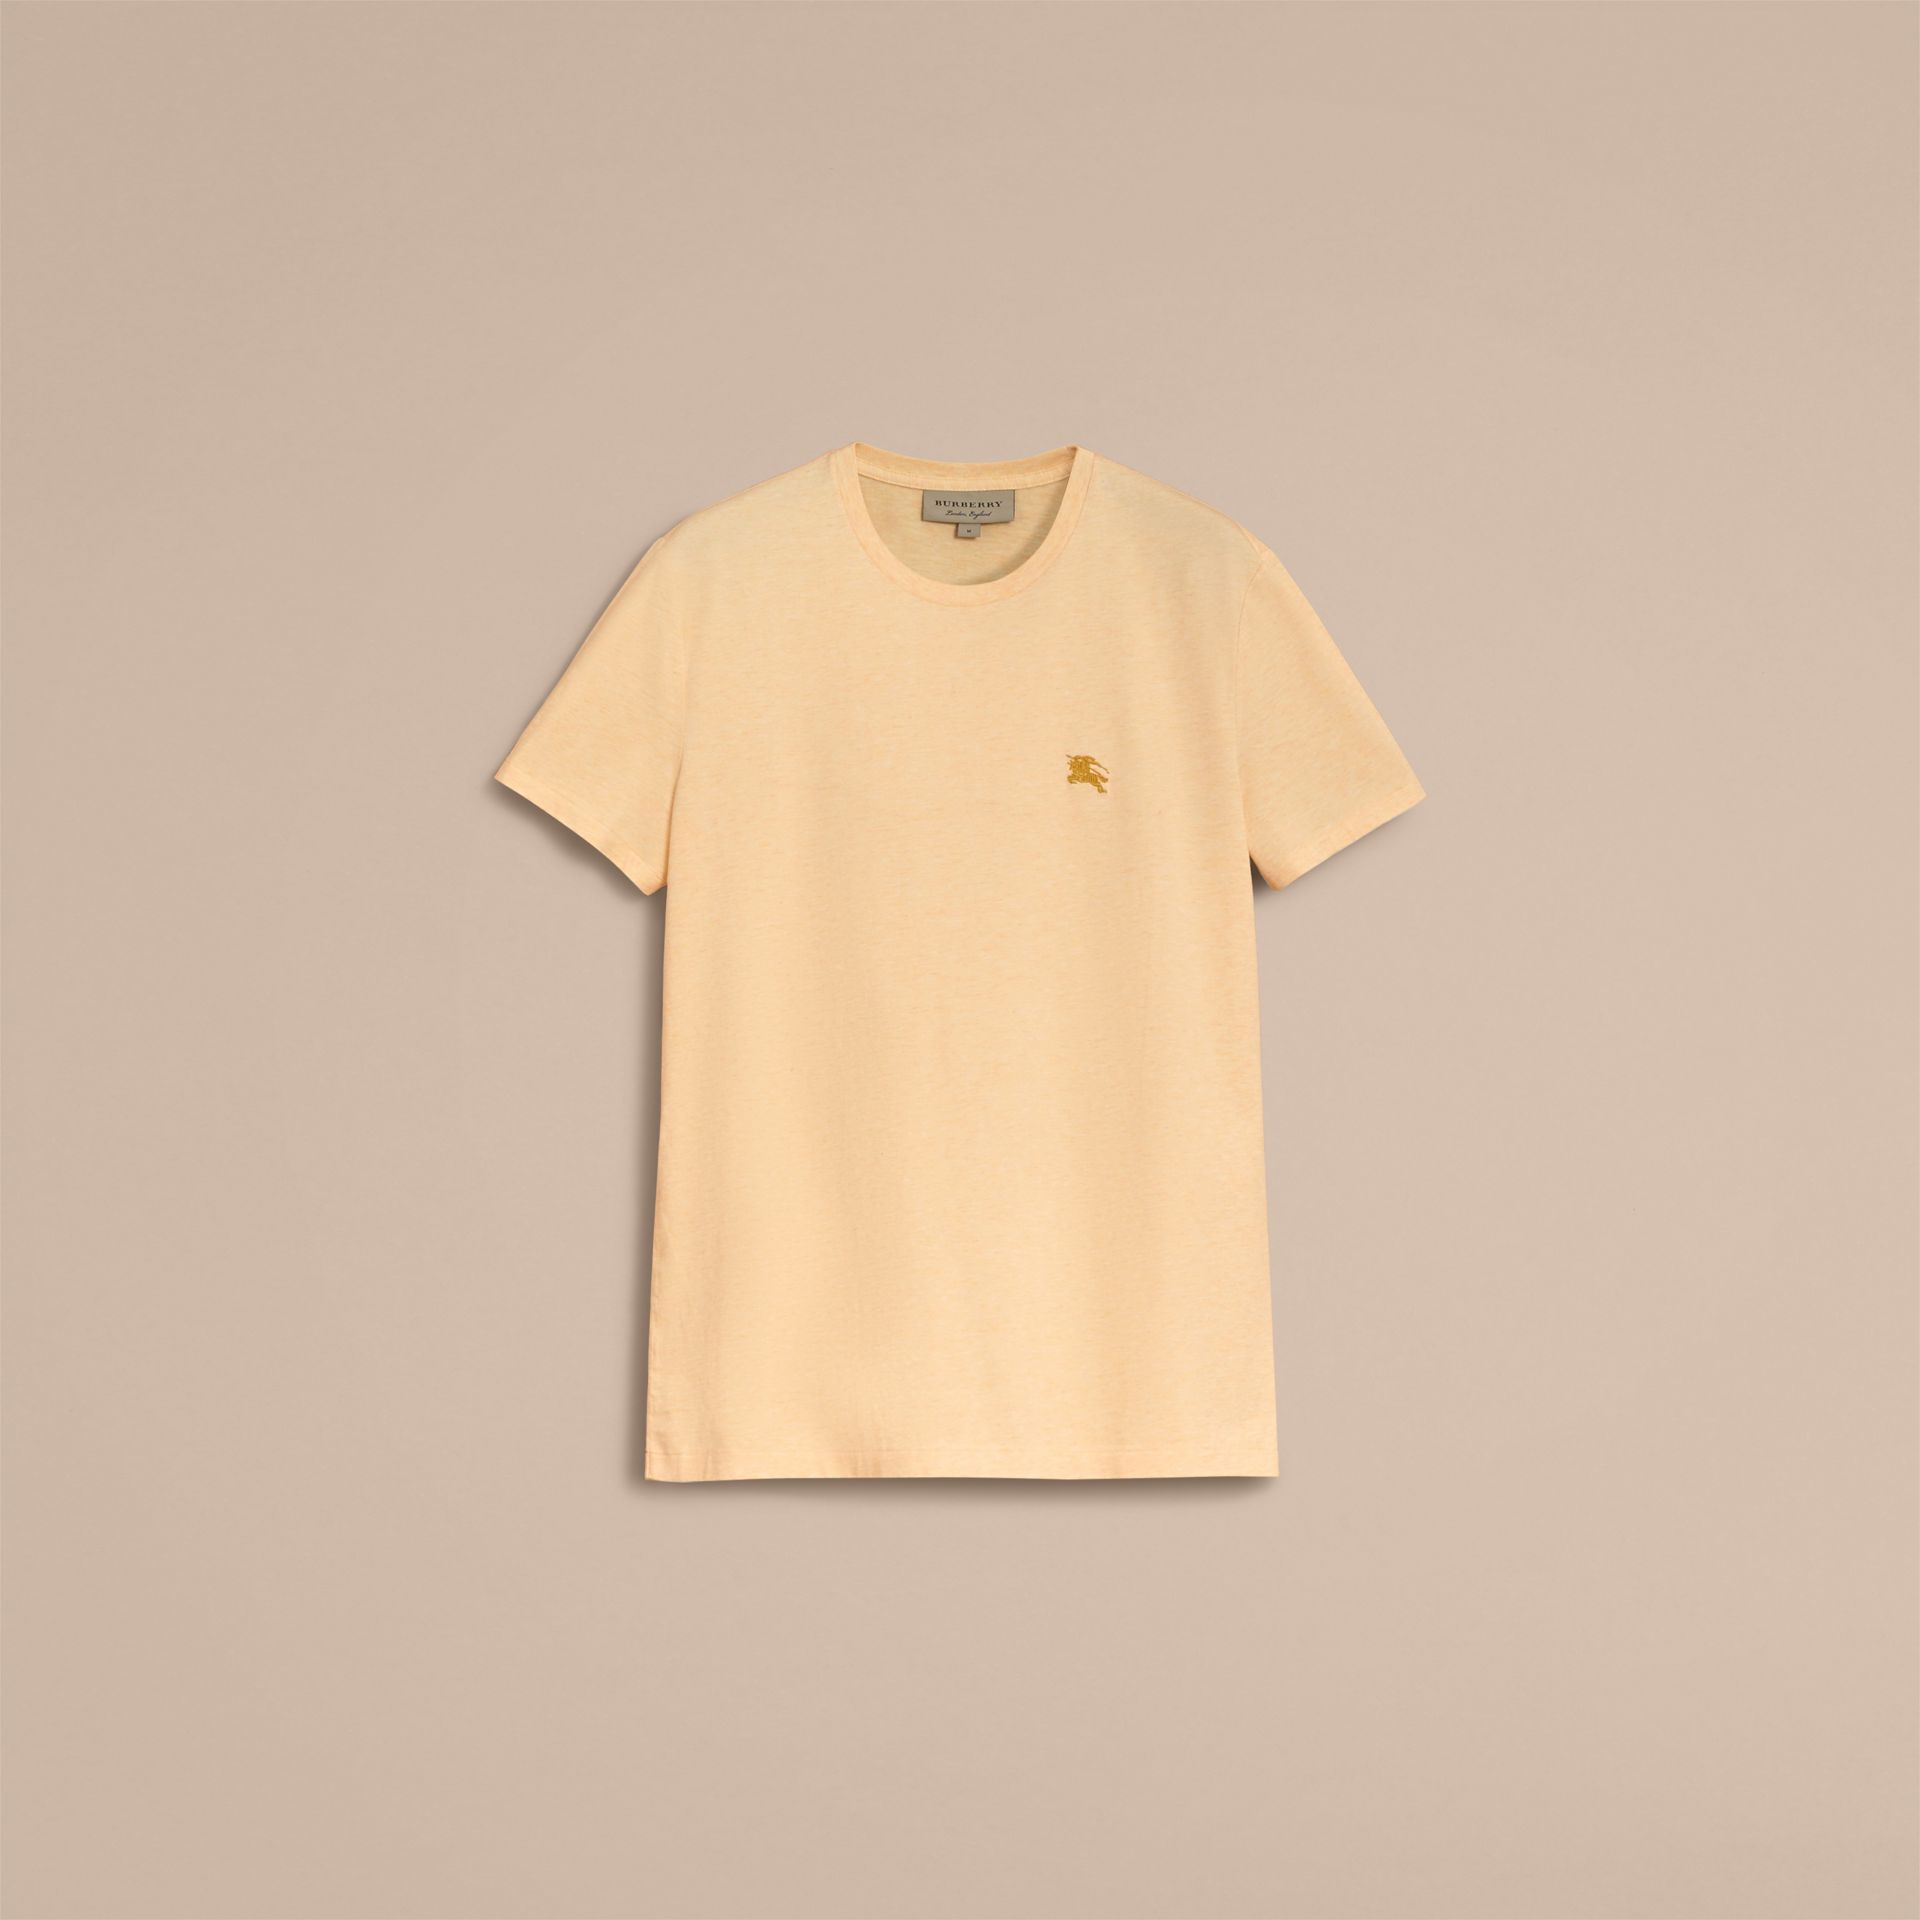 Cotton Jersey T-shirt in Pale Yellow Melange - Men | Burberry Singapore - gallery image 4